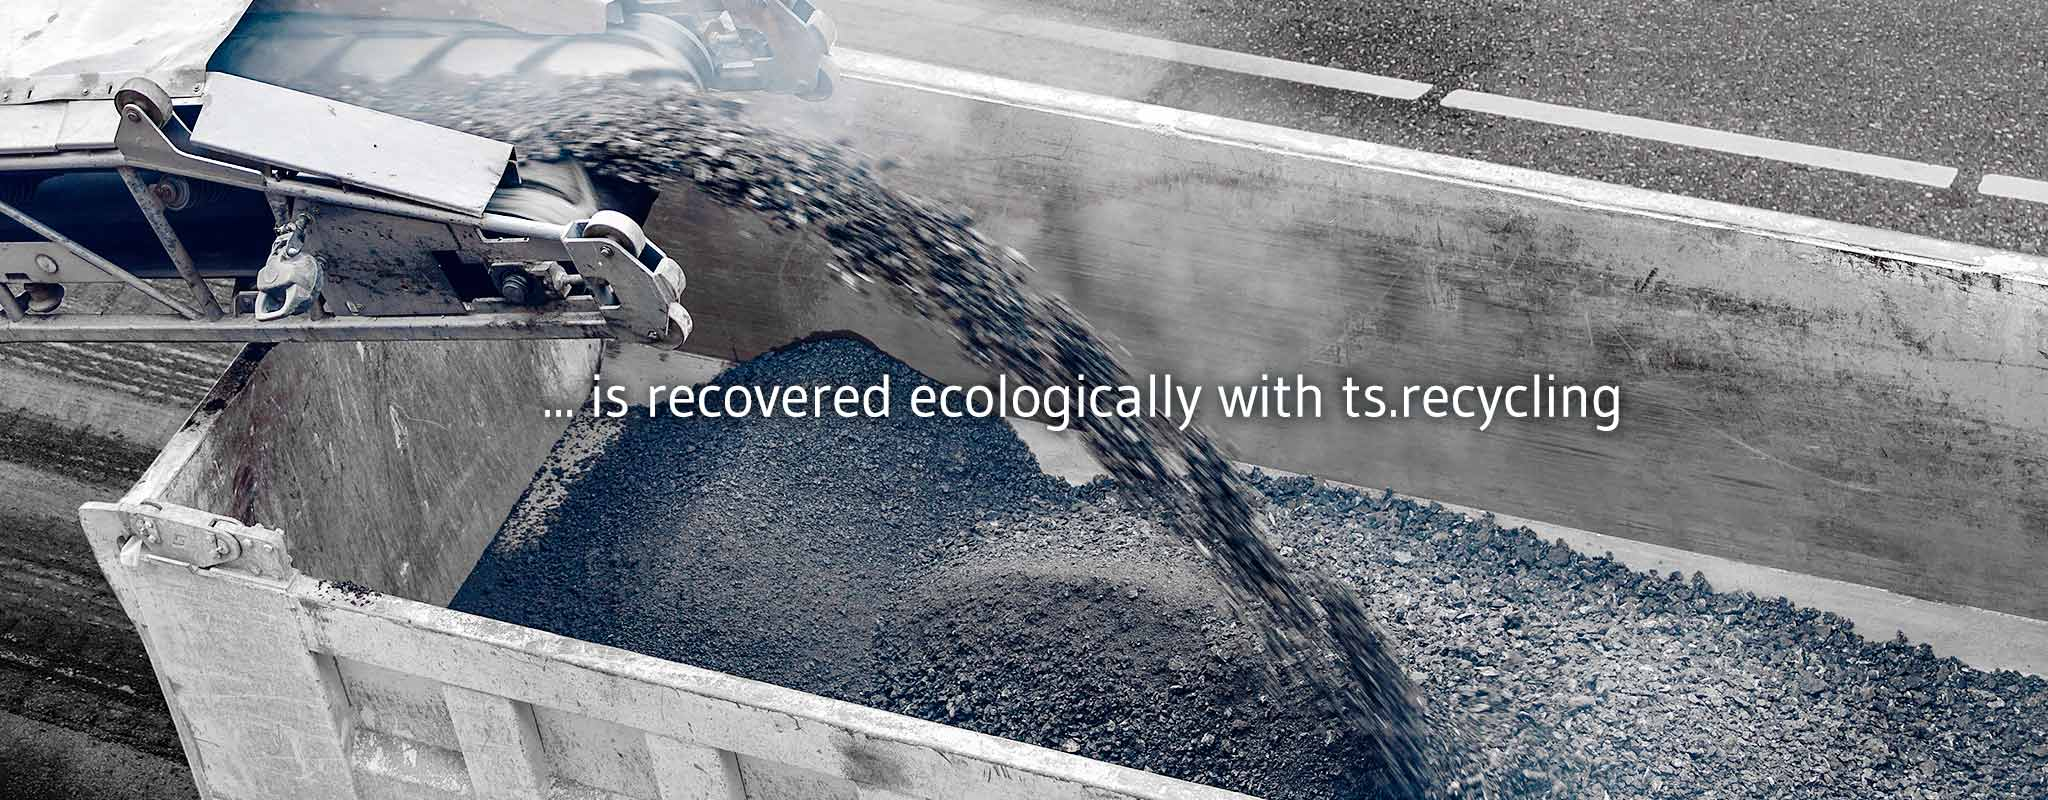 Tar contaminated road rubble recycling alternatives with ts.recycling